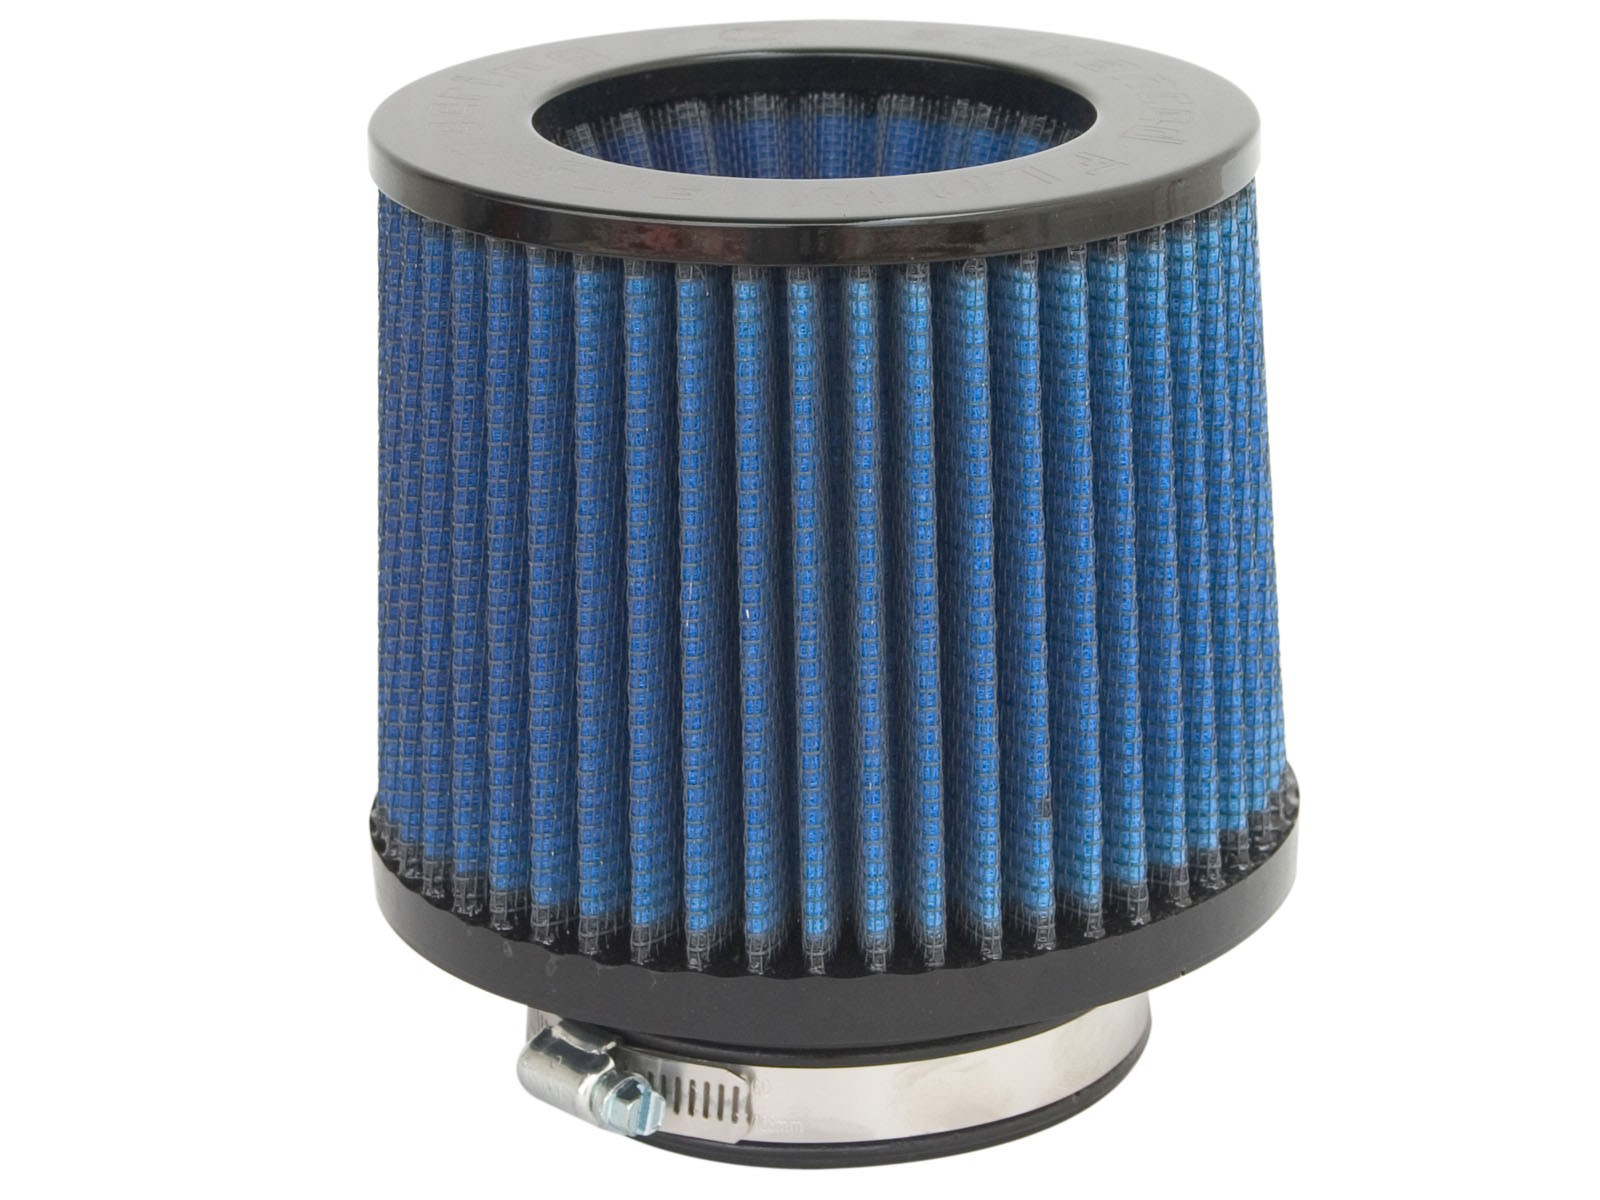 aFe POWER 24-91033 Magnum FLOW Pro 5R Air Filter